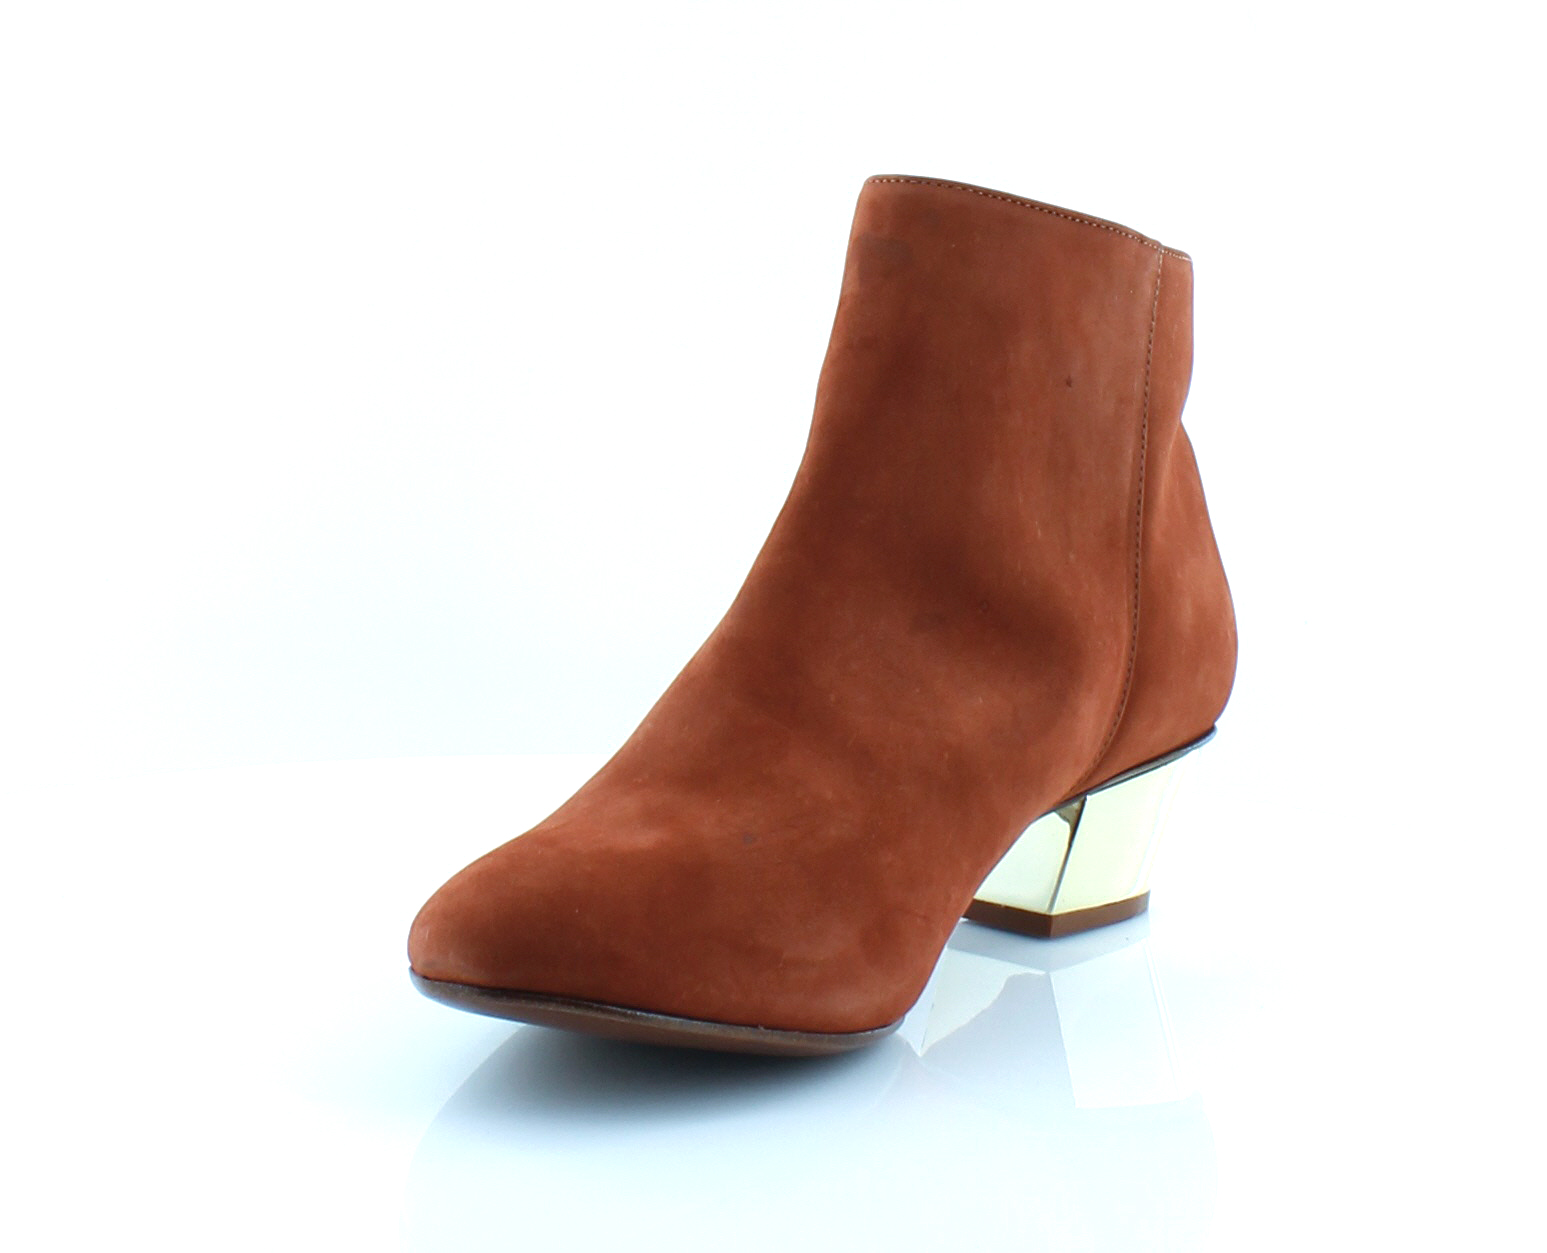 Details about AREZZO Linx Orange Womens Shoes Size 9 B Boots MSRP $225